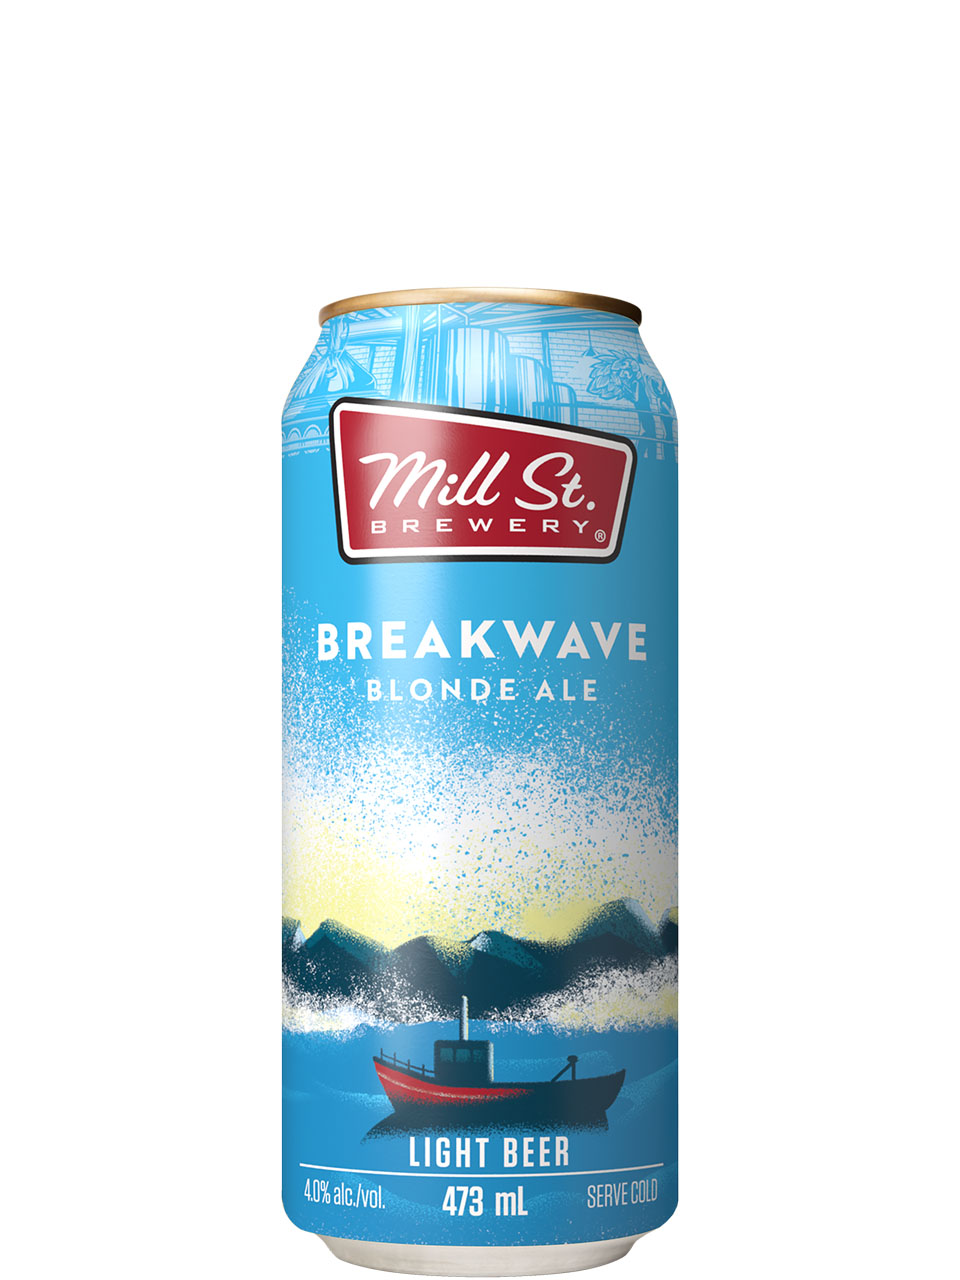 Mill St. Breakwave Blonde Ale 473ml Can